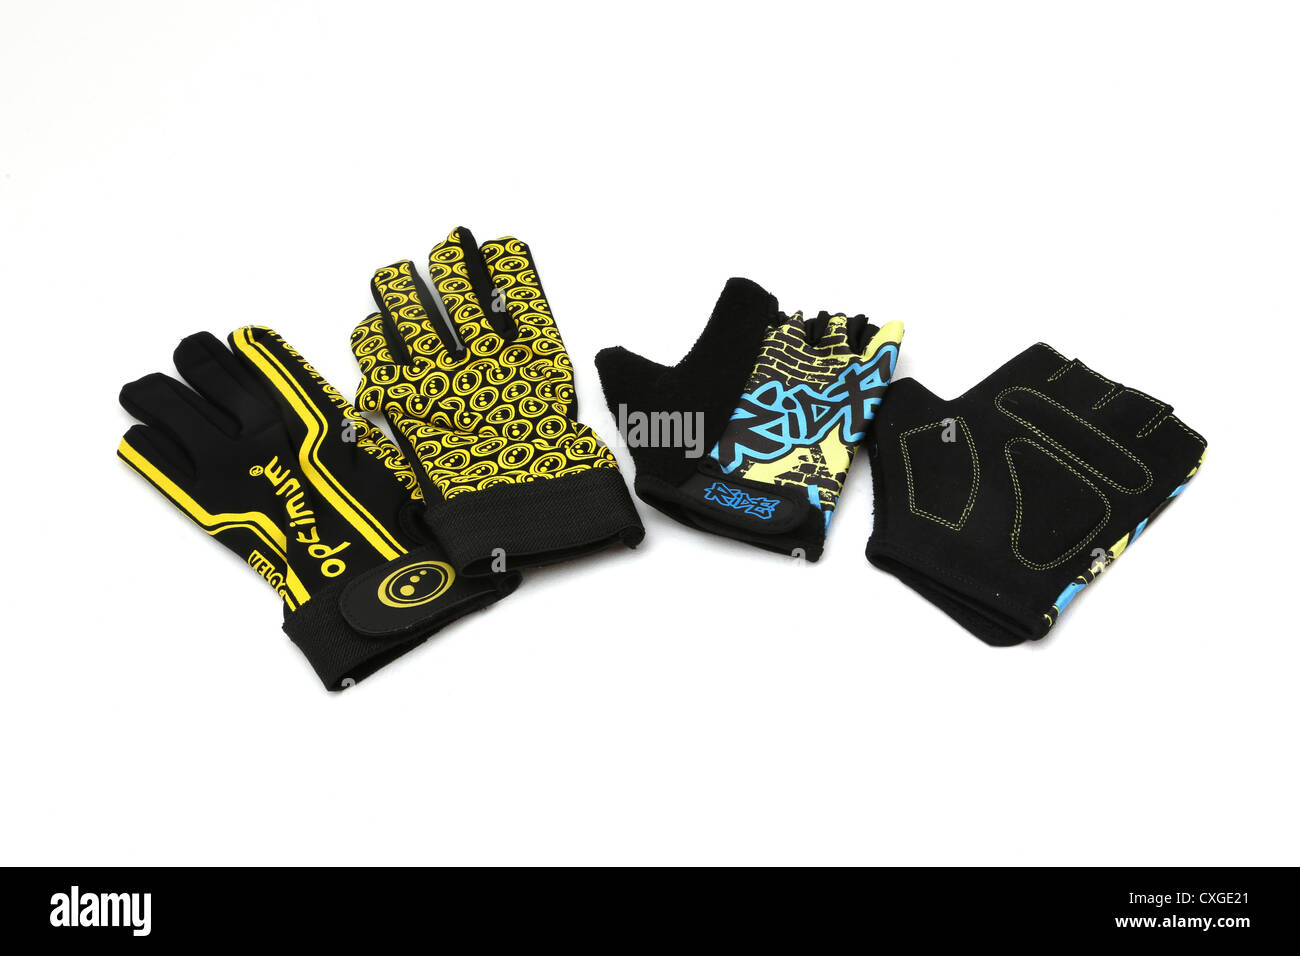 724fb9d06131 Two Pairs Of Sports Gloves Optimum Velocity And Ride Fingerless Gloves